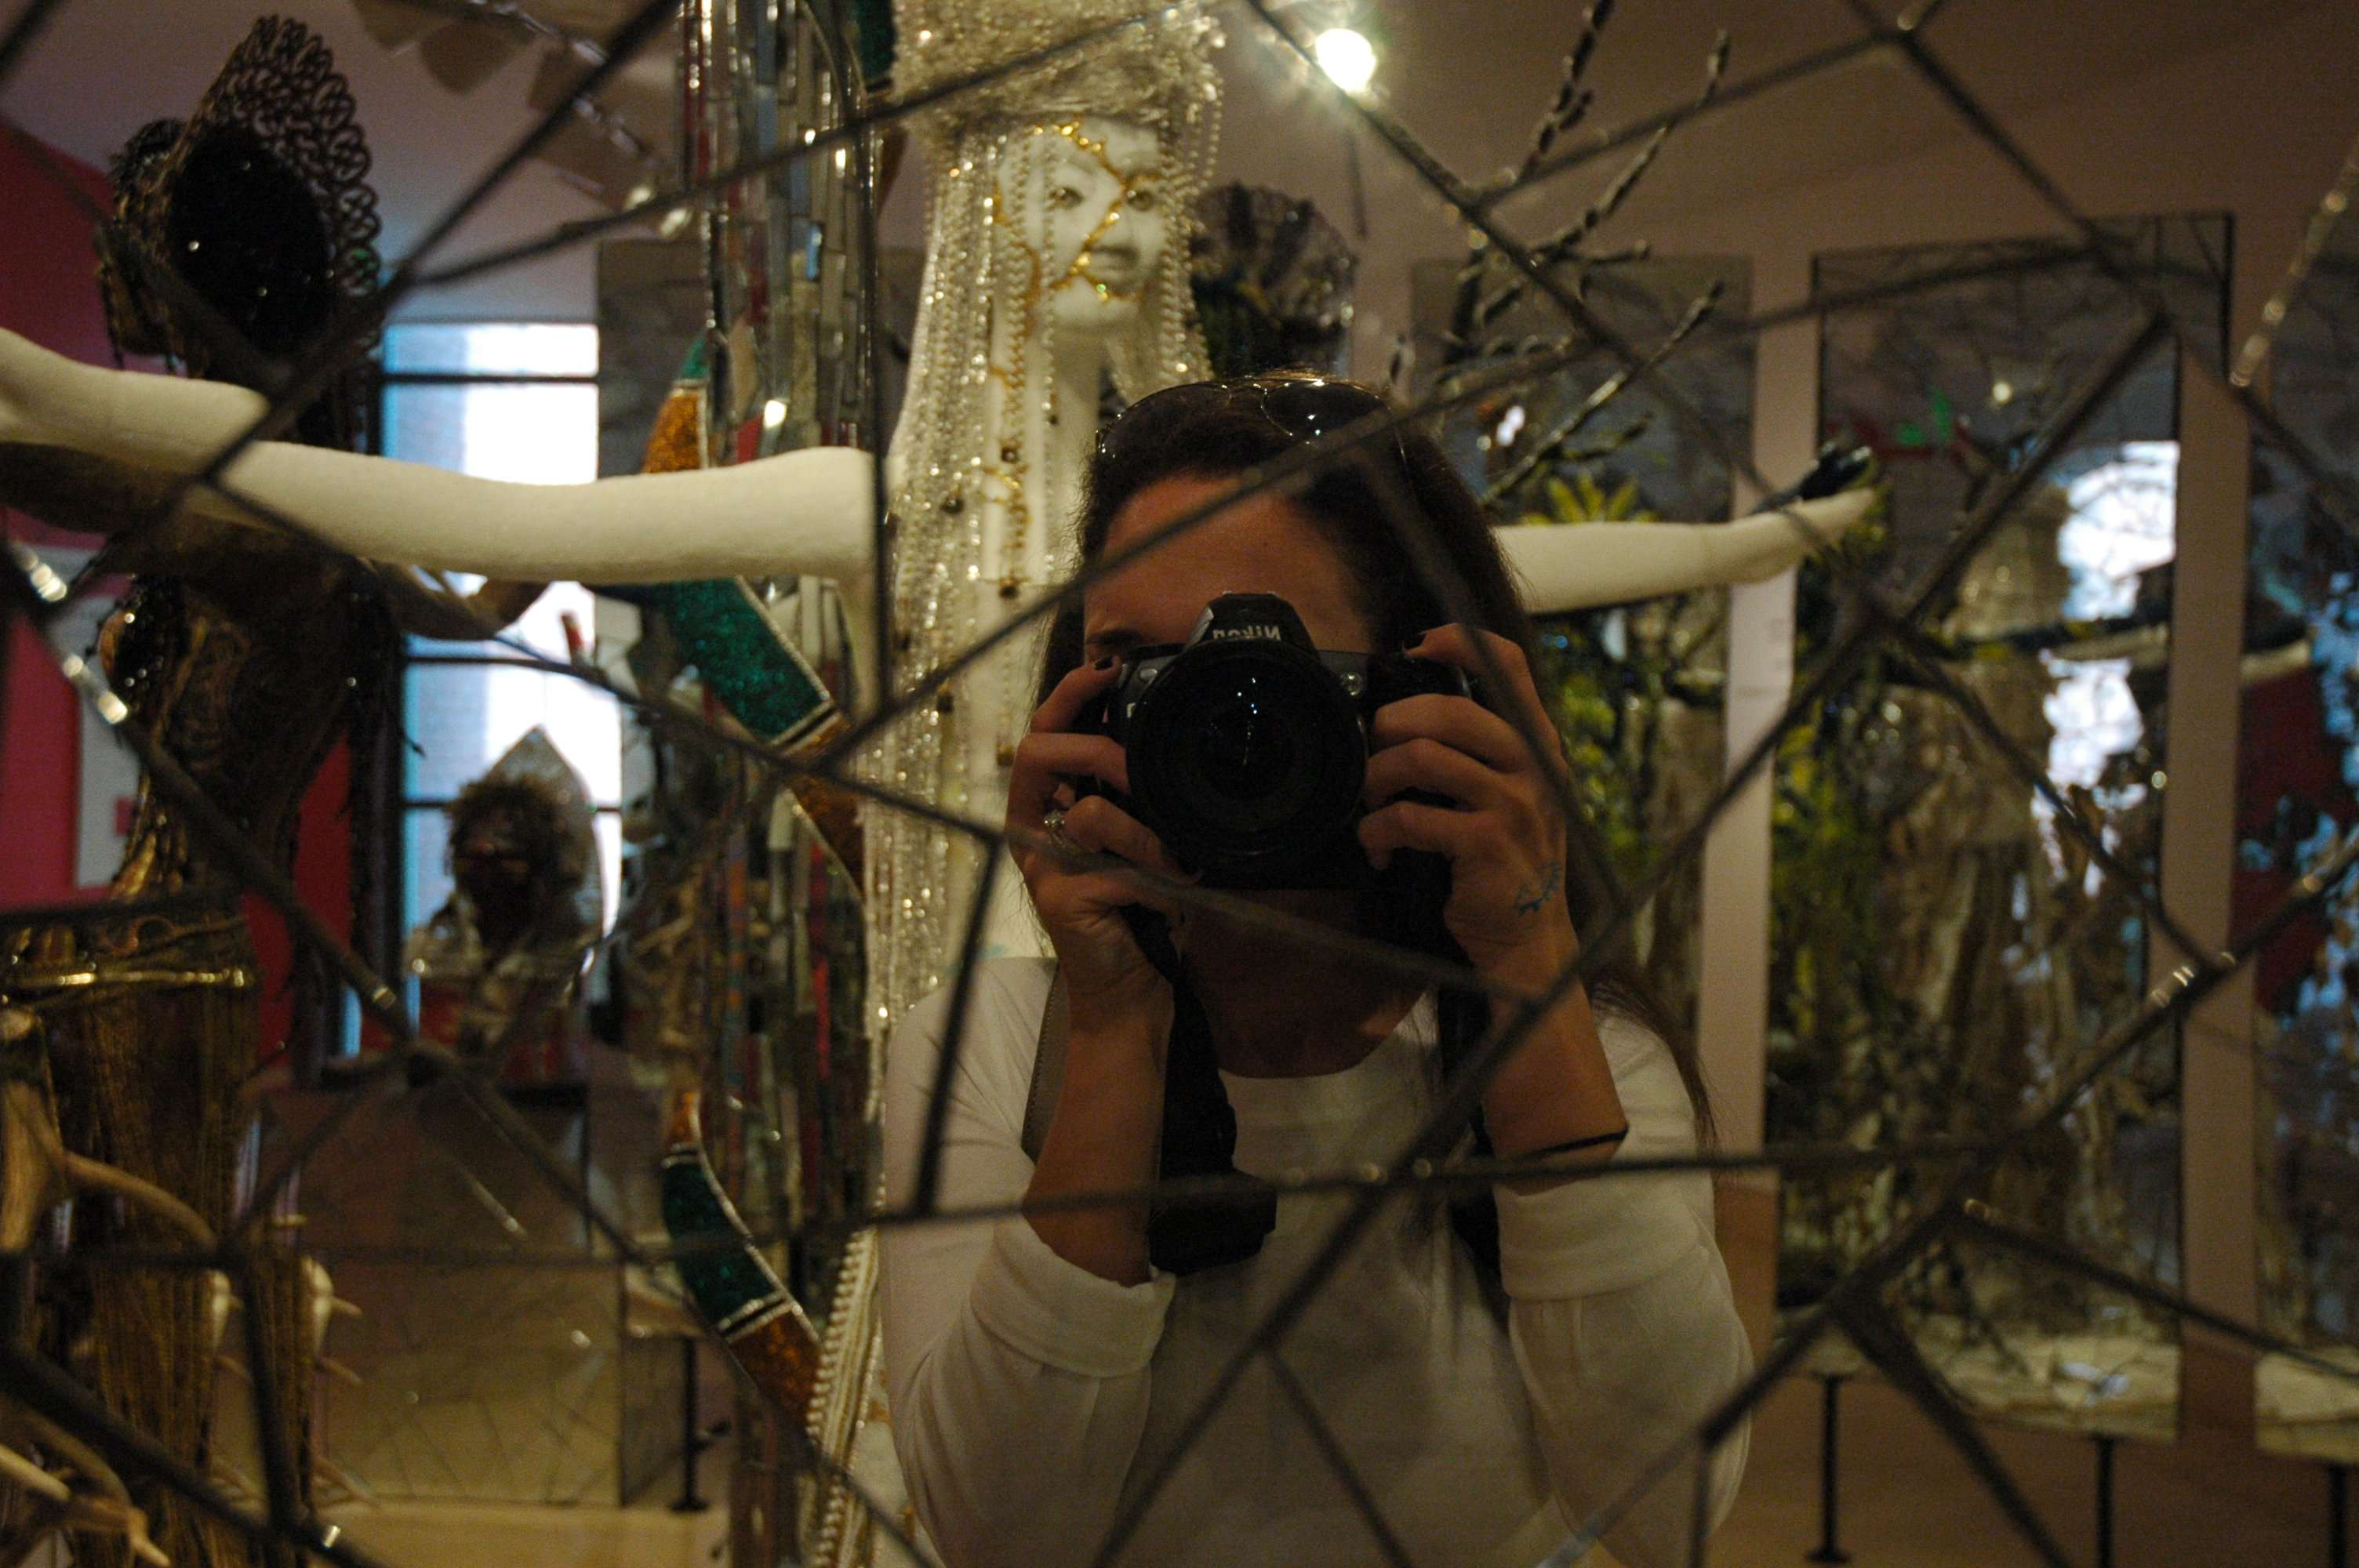 Playing with mirrored glass at the American Visionary Art Museum